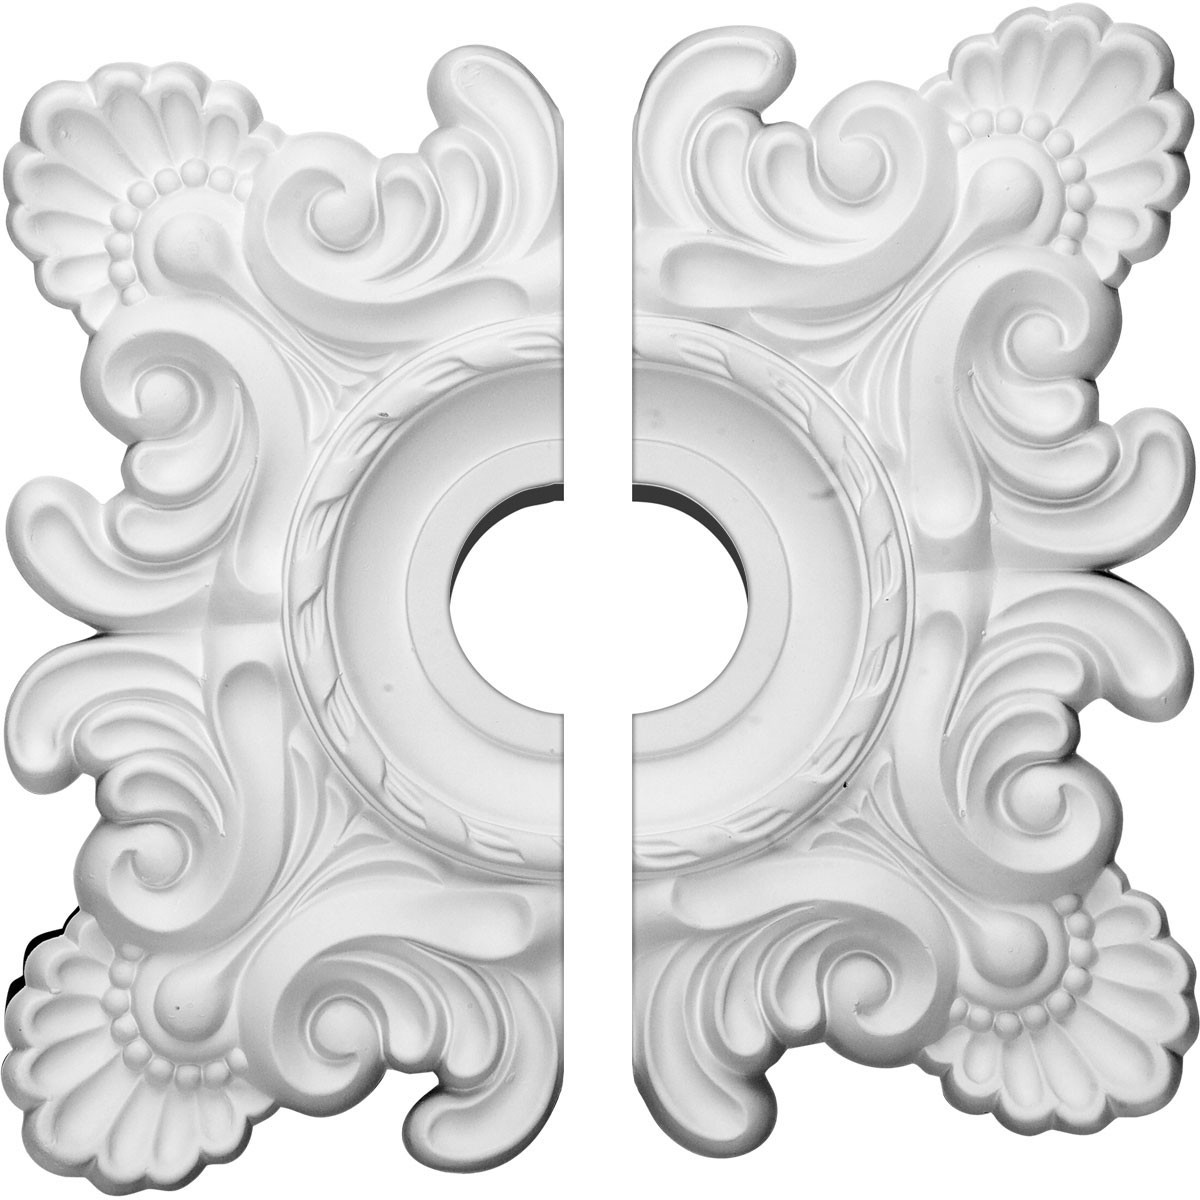 """EM-CM18CR2 - 18""""W x 18""""H x 3 1/4""""ID x 1 1/2""""P Crawley Ceiling Medallion, Two Piece (Fits Canopies up to 6 3/4"""")"""